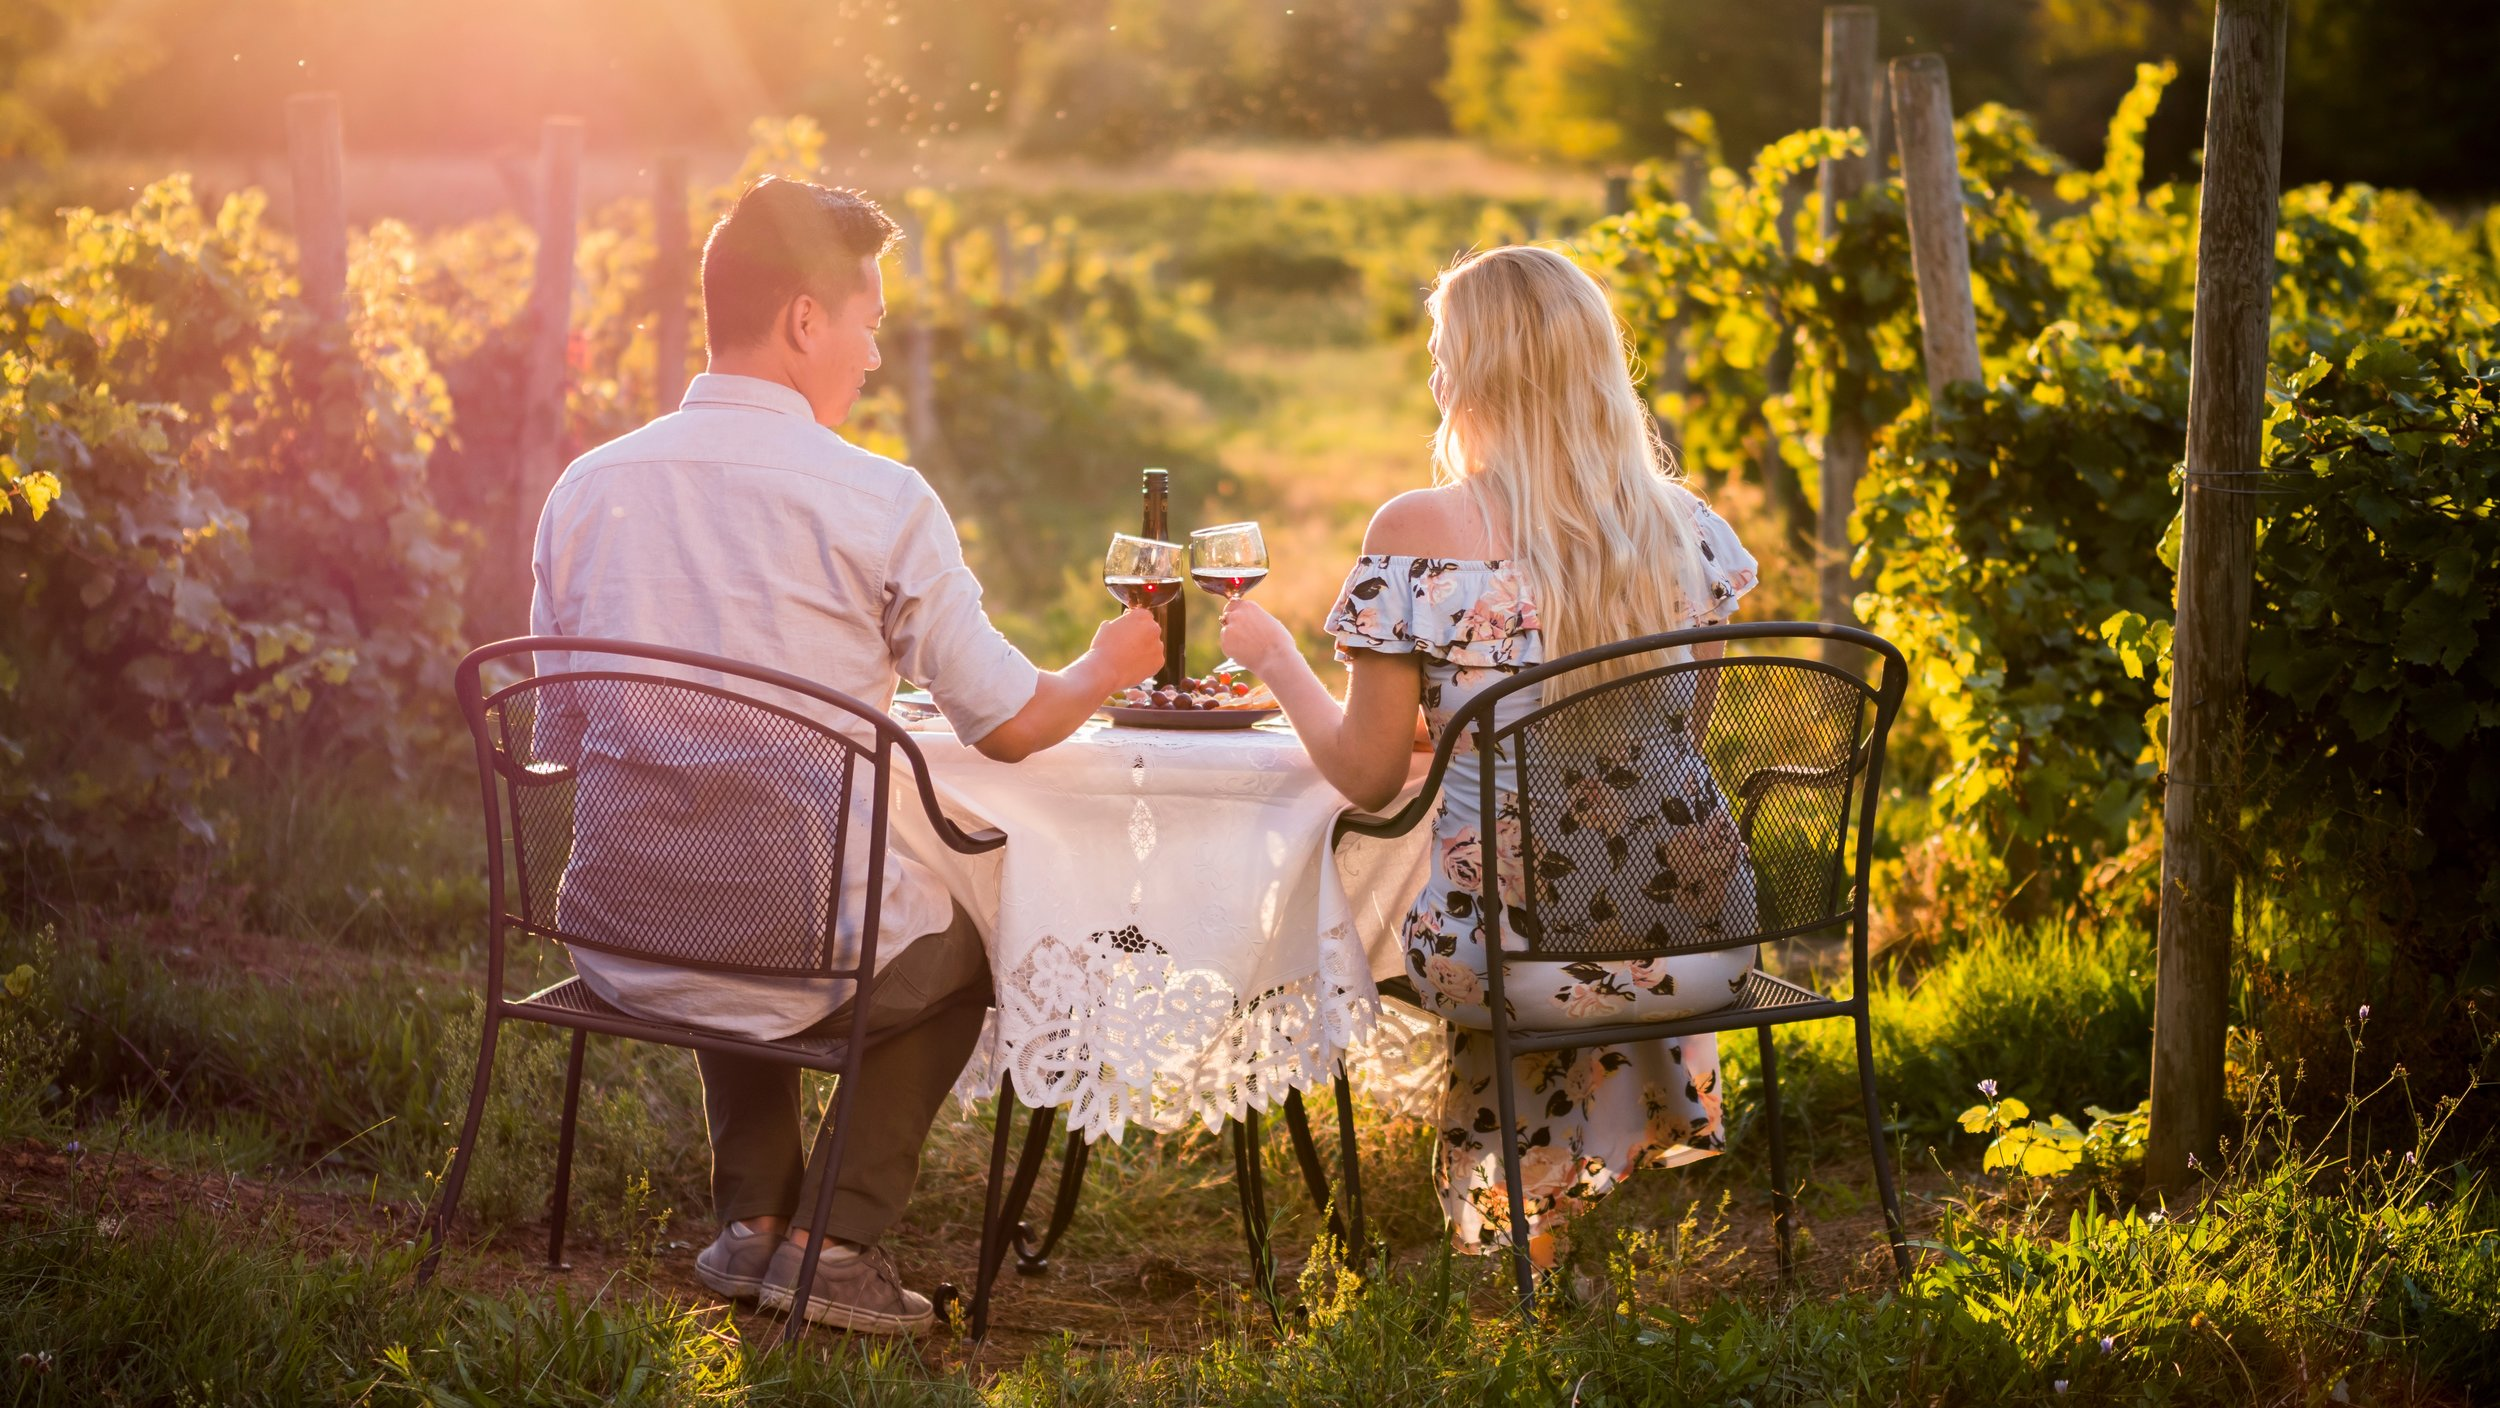 Couple's wine Tours - All-Inclusive Romantic Wine Tours for 2!